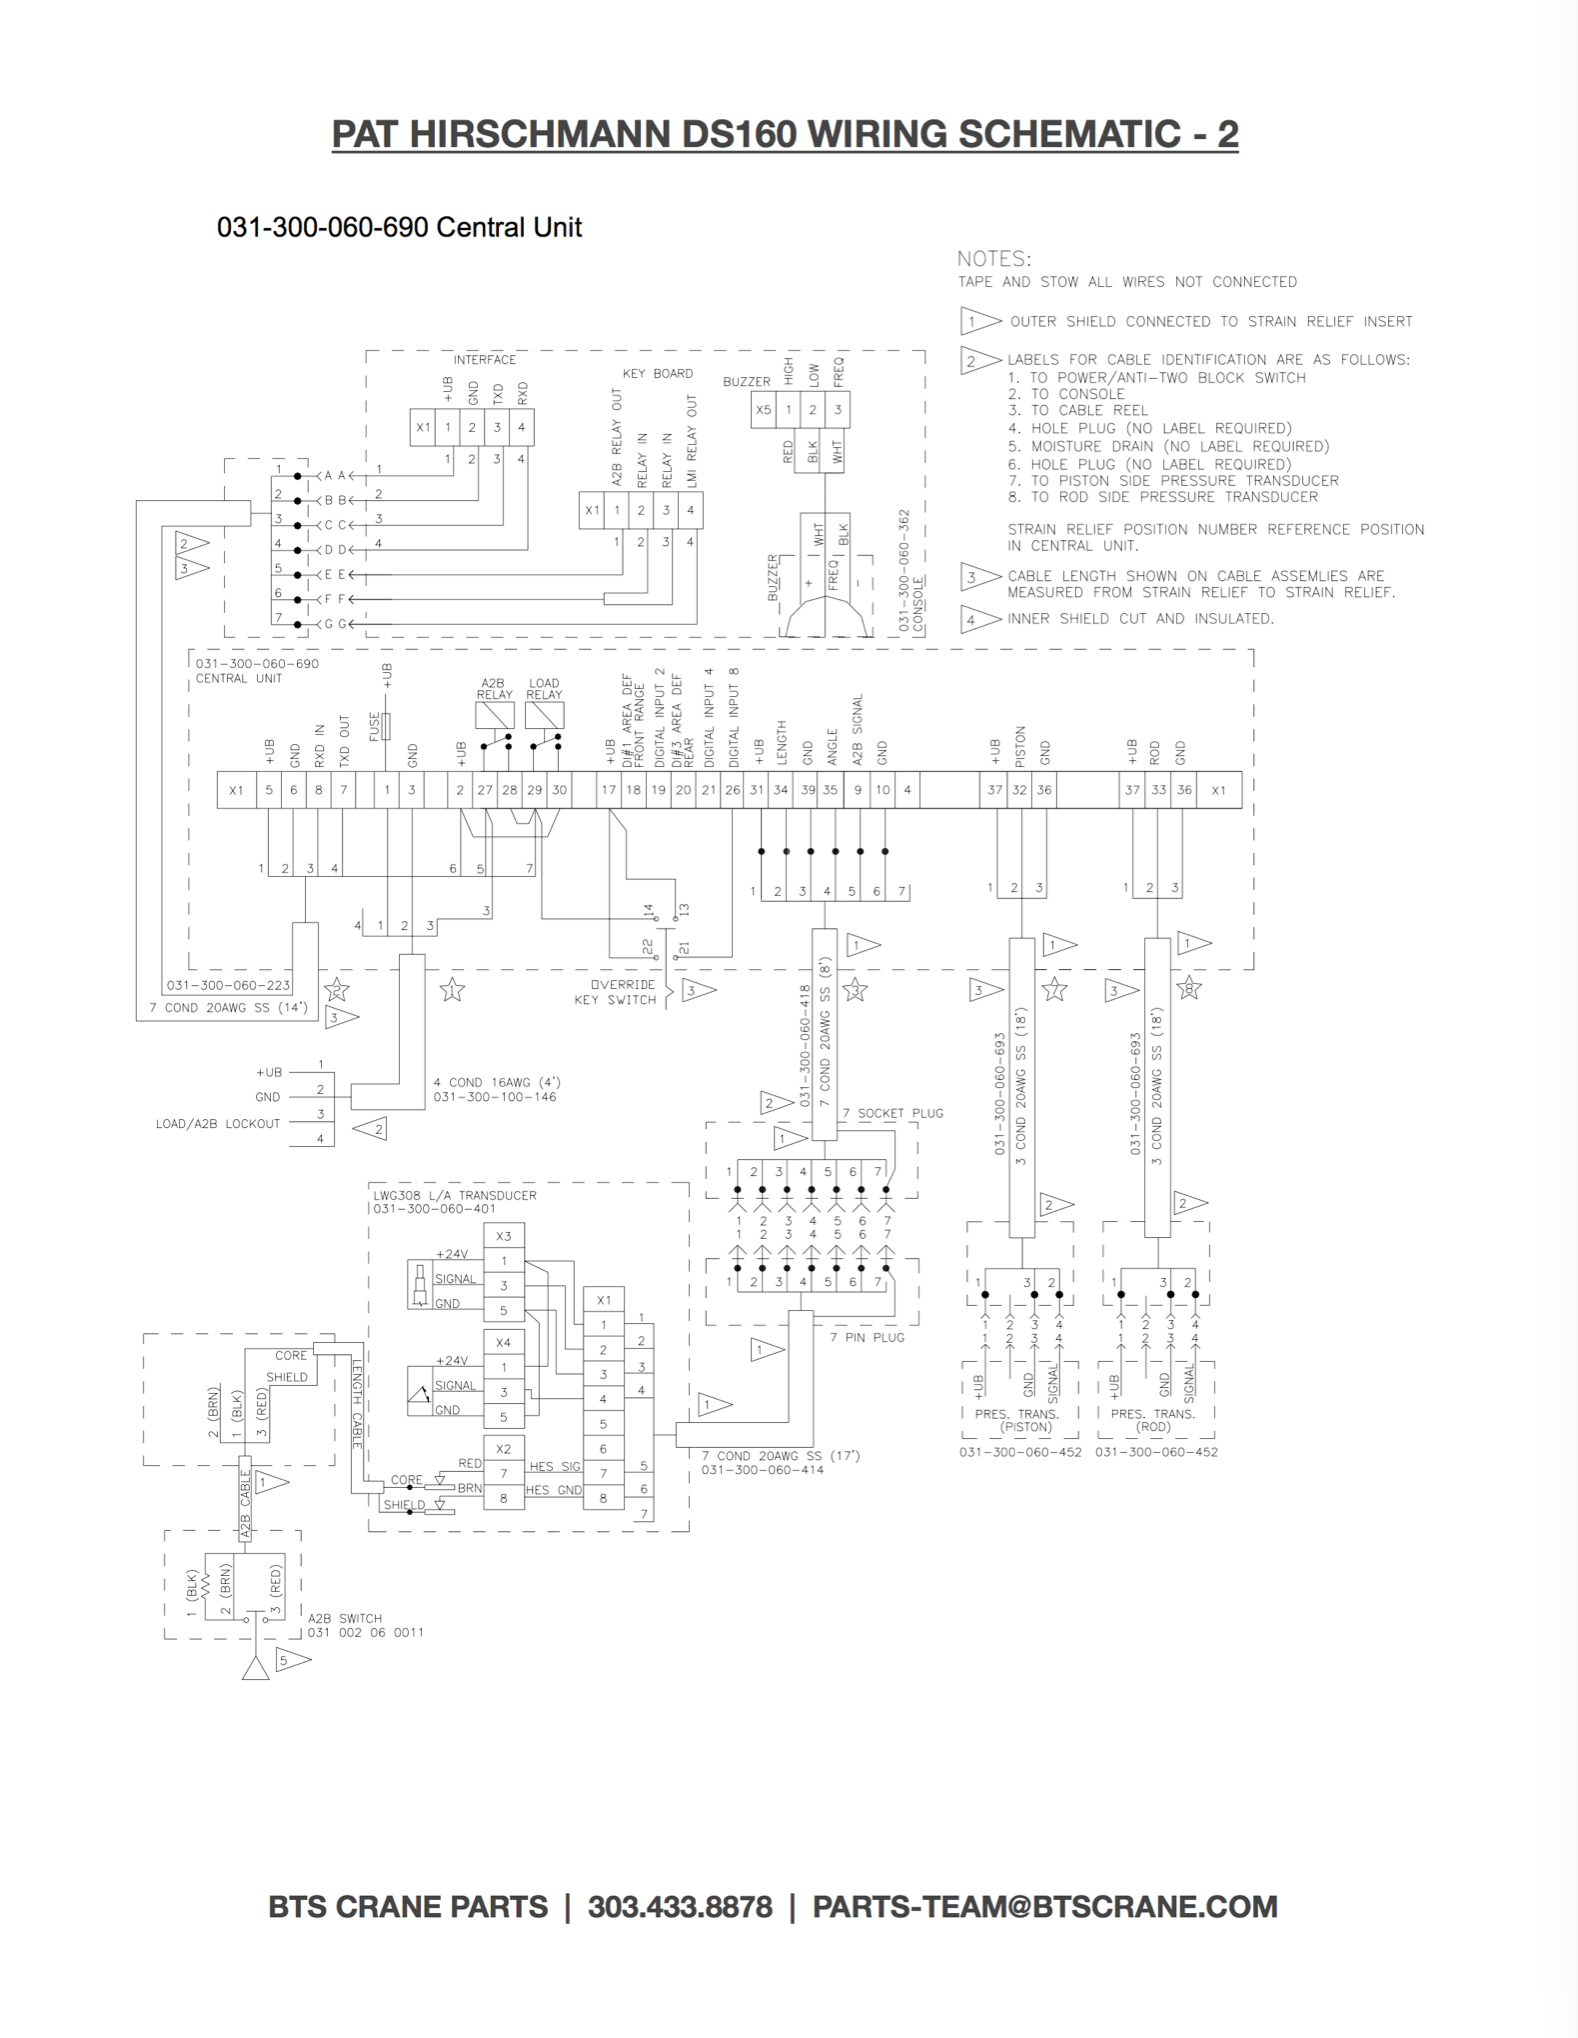 PAT Hirschmann DS160 Wiring Schematic | CLICK HERE on lighting diagrams, troubleshooting diagrams, electrical diagrams, battery diagrams, switch diagrams, snatch block diagrams, honda motorcycle repair diagrams, sincgars radio configurations diagrams, motor diagrams, series and parallel circuits diagrams, hvac diagrams, internet of things diagrams, transformer diagrams, friendship bracelet diagrams, gmc fuse box diagrams, pinout diagrams, engine diagrams, electronic circuit diagrams, led circuit diagrams, smart car diagrams,